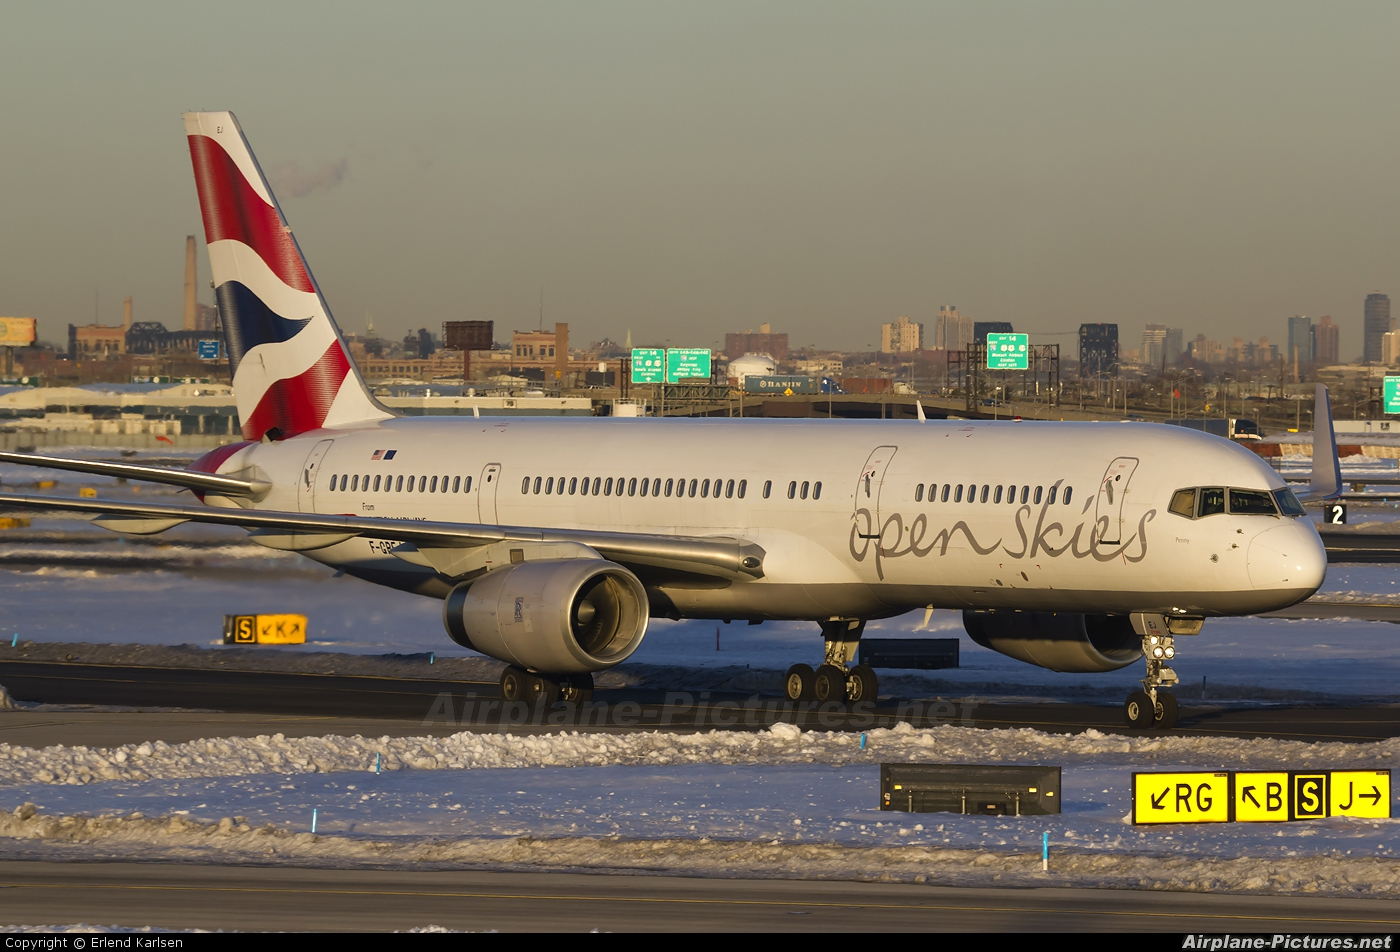 British Airways - Open Skies F-GPEJ aircraft at Newark Liberty Intl